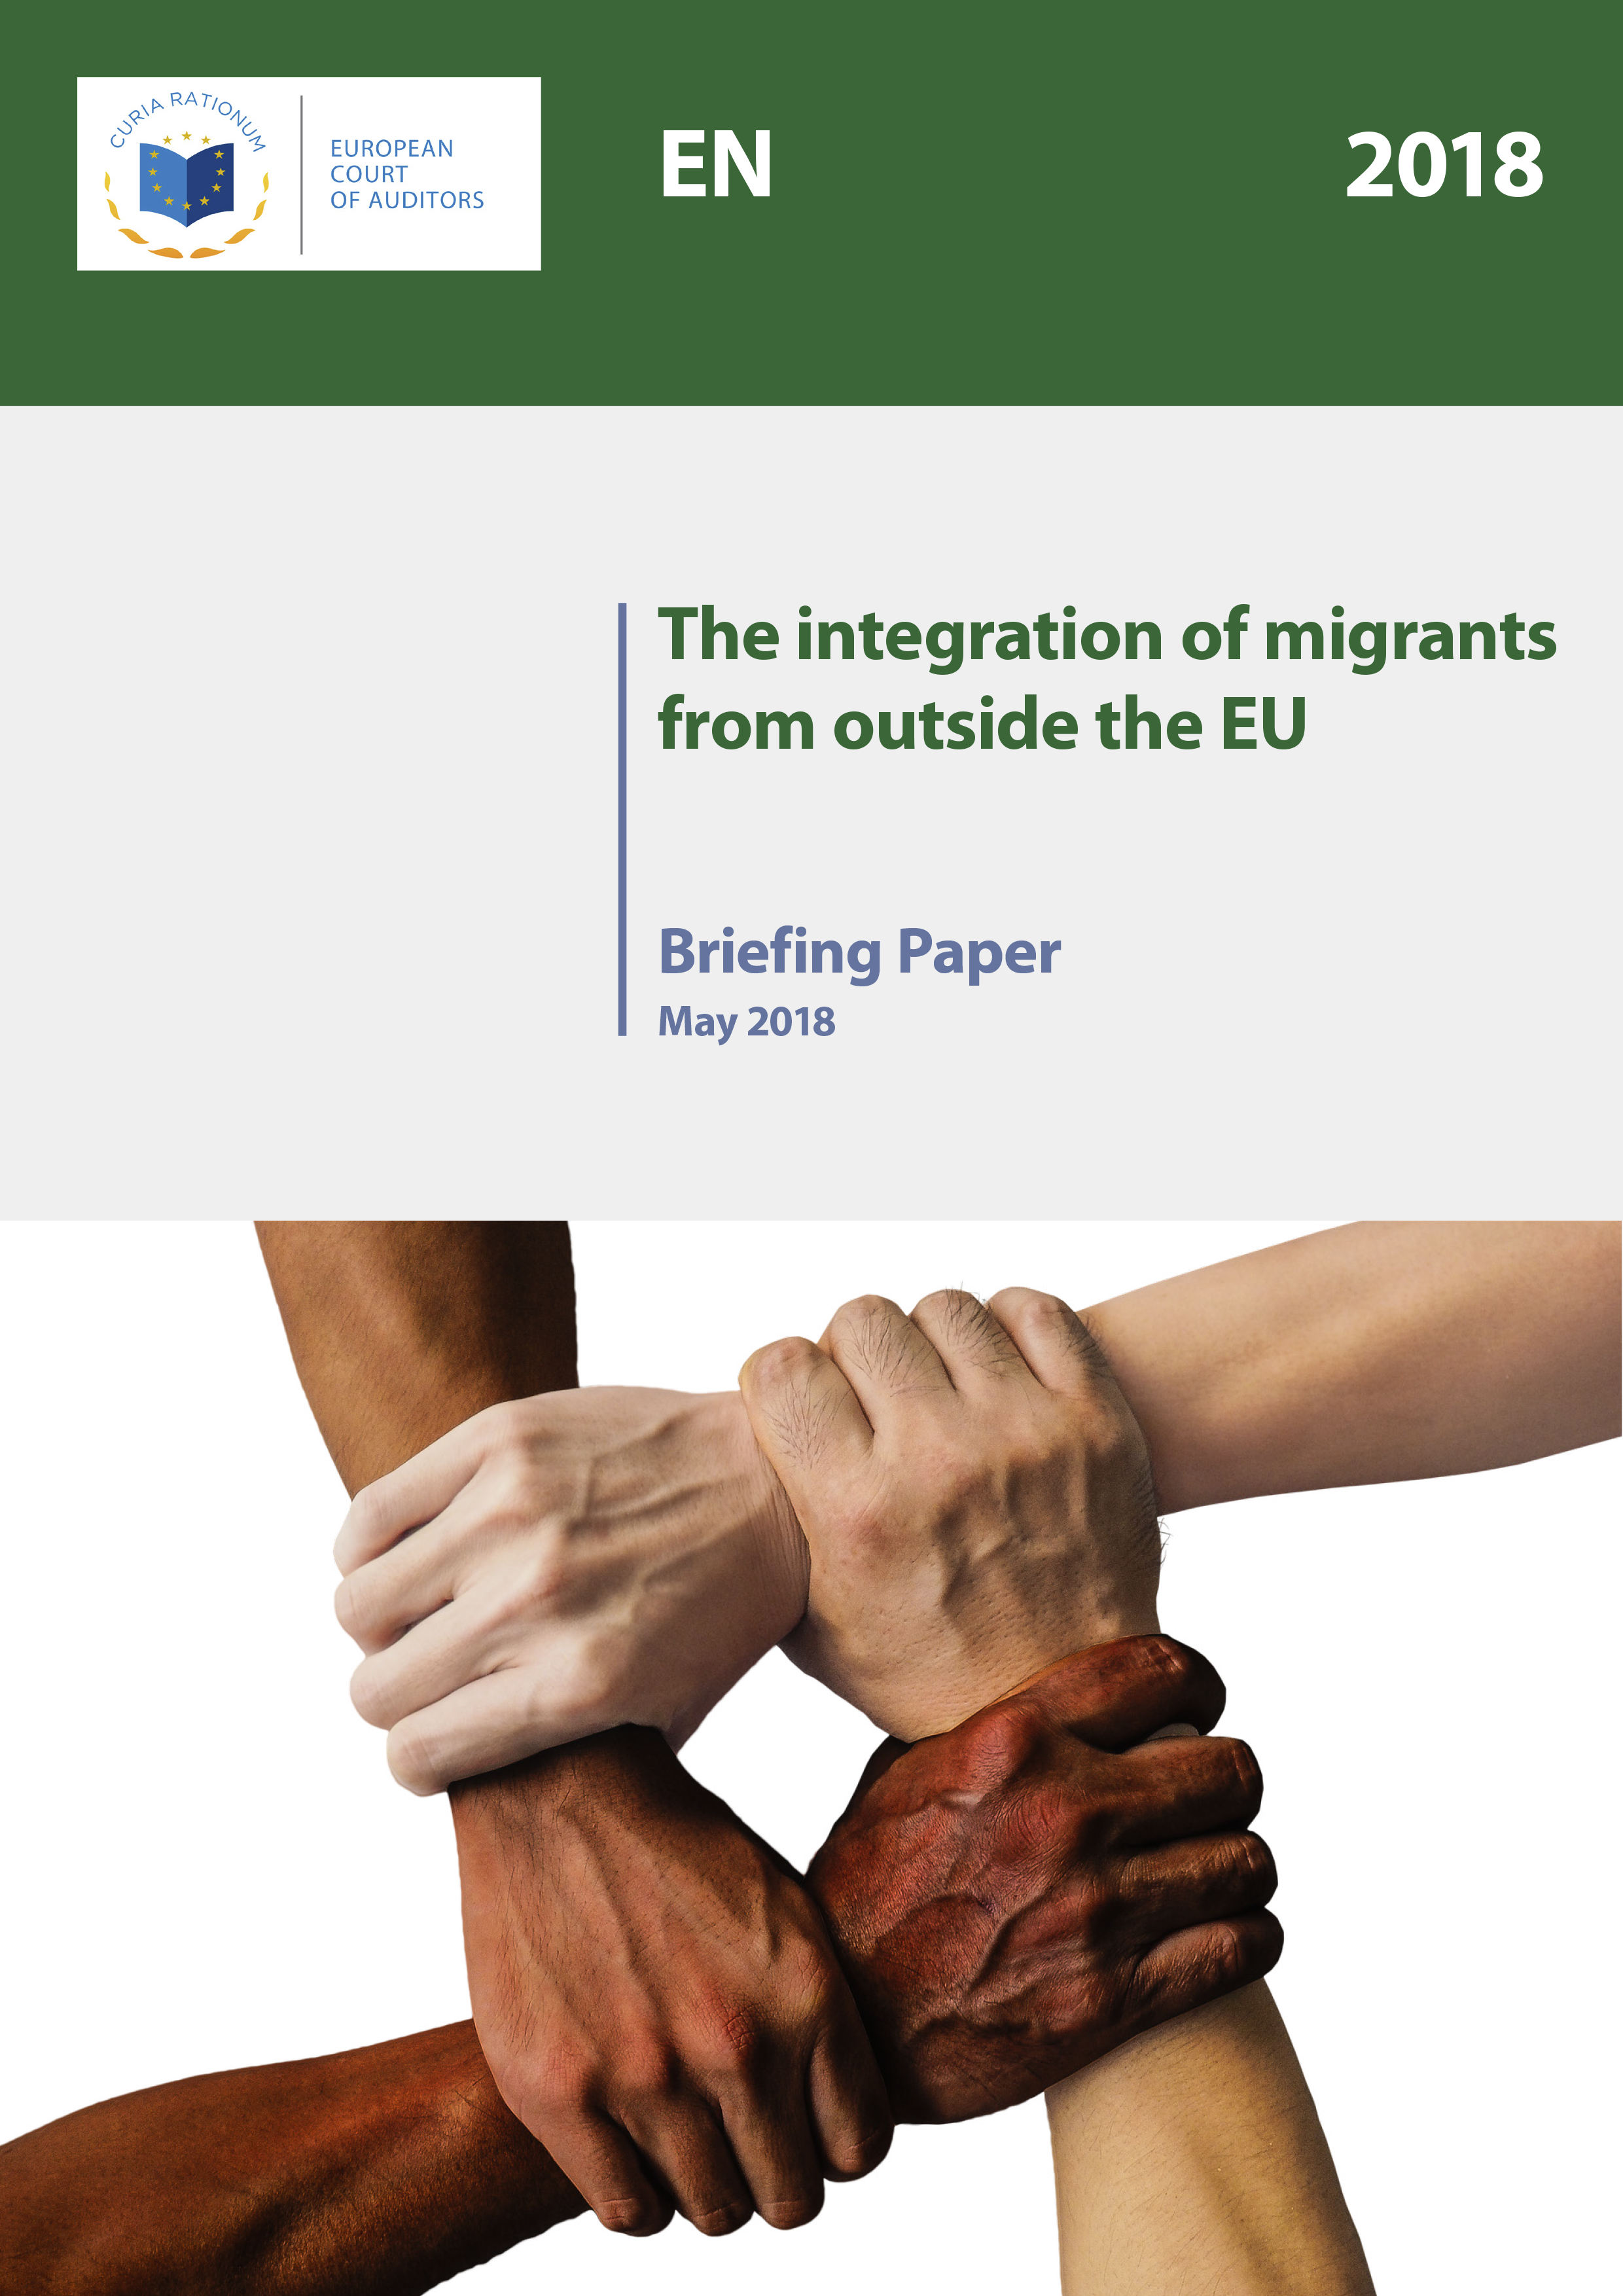 Review No 04/2018: The integration of migrants from outside the EU (Briefing paper)